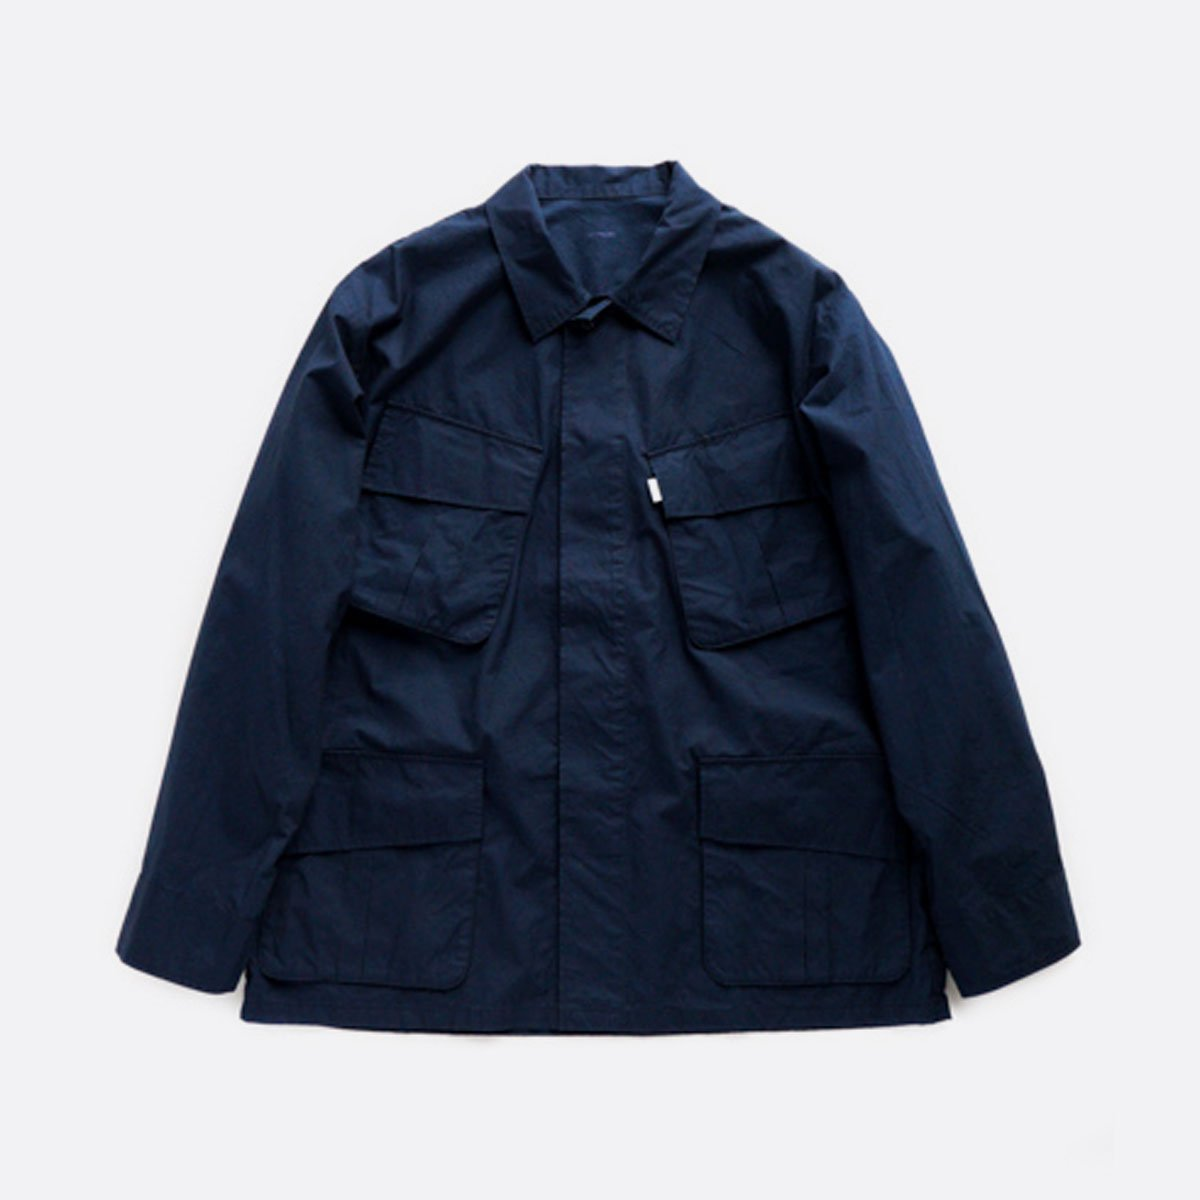 SH  FATIGUE SHIRT  (NAVY)